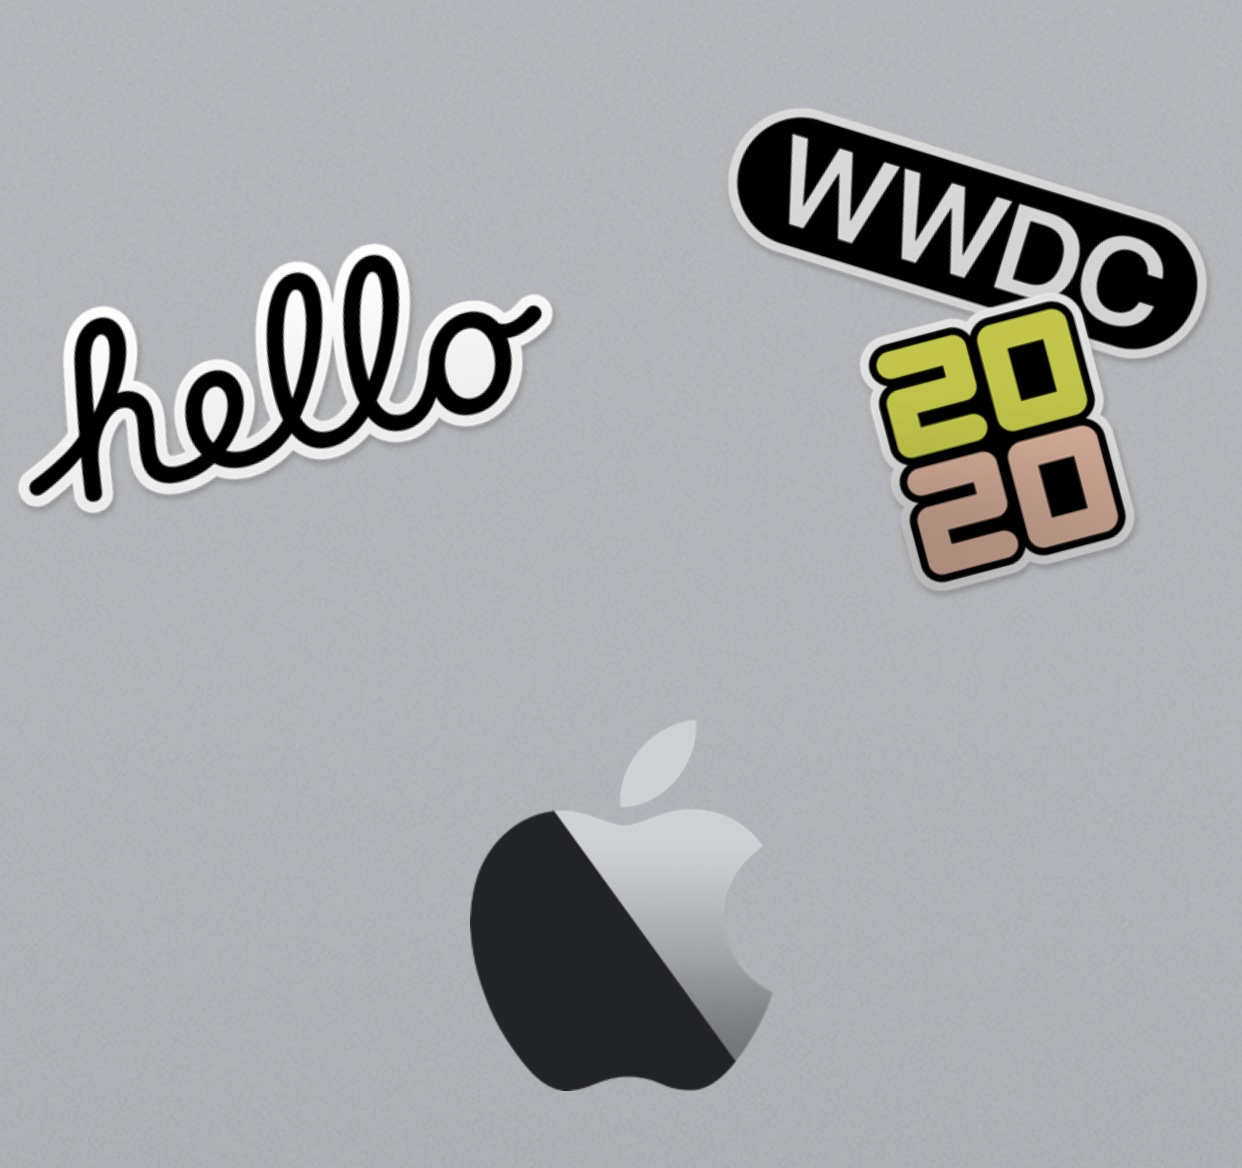 Apple announces online-only WWDC 2020 due to coronavirus spread